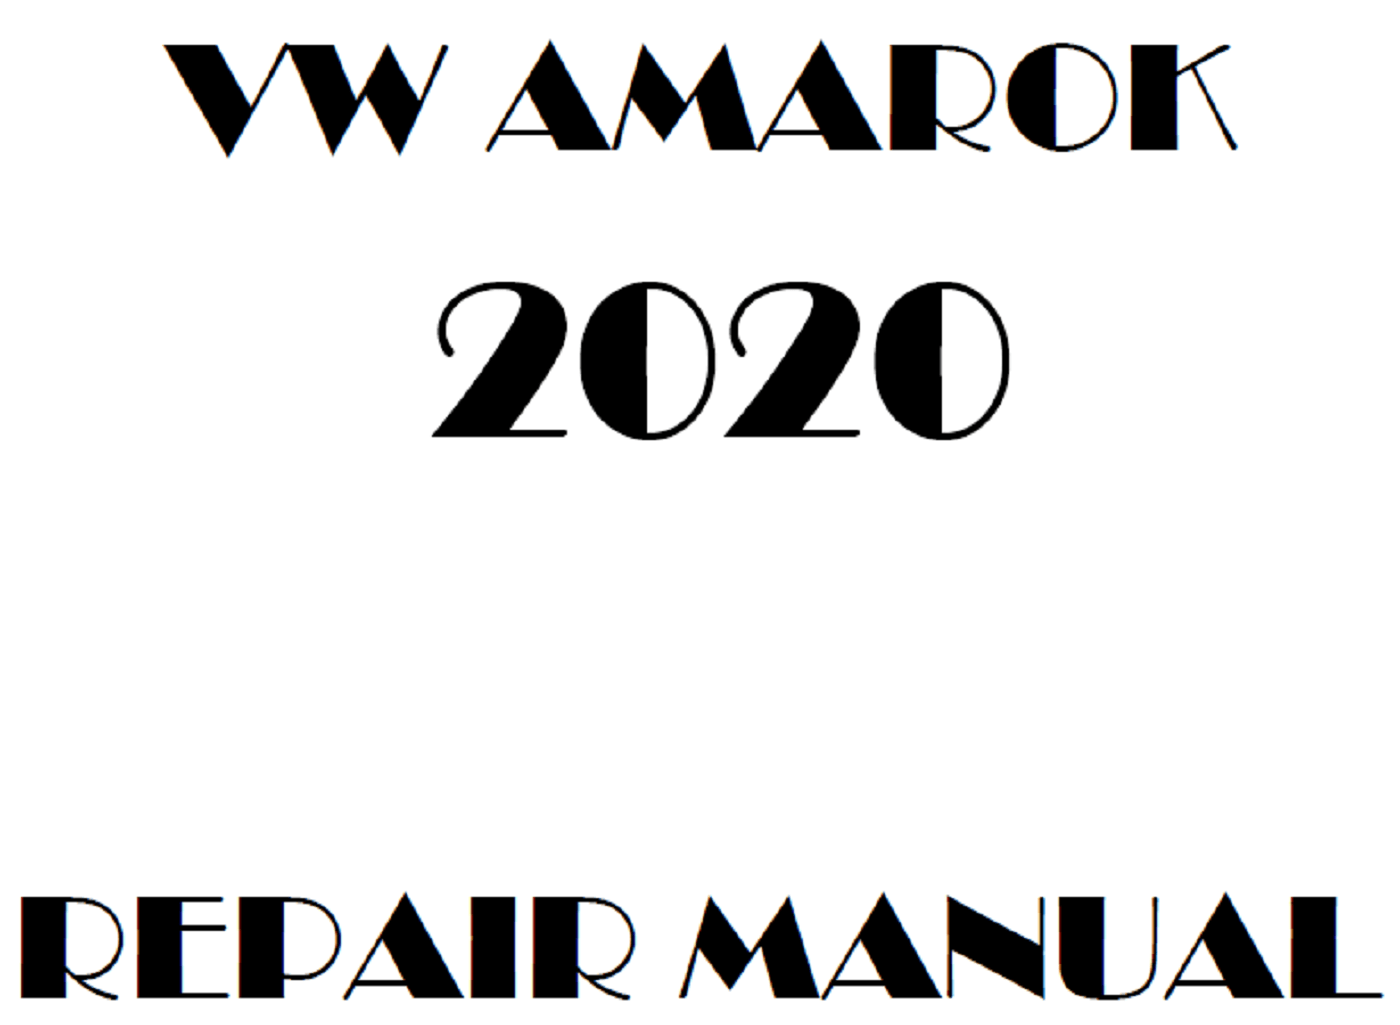 2020 Volkswagen Amarok repair manual